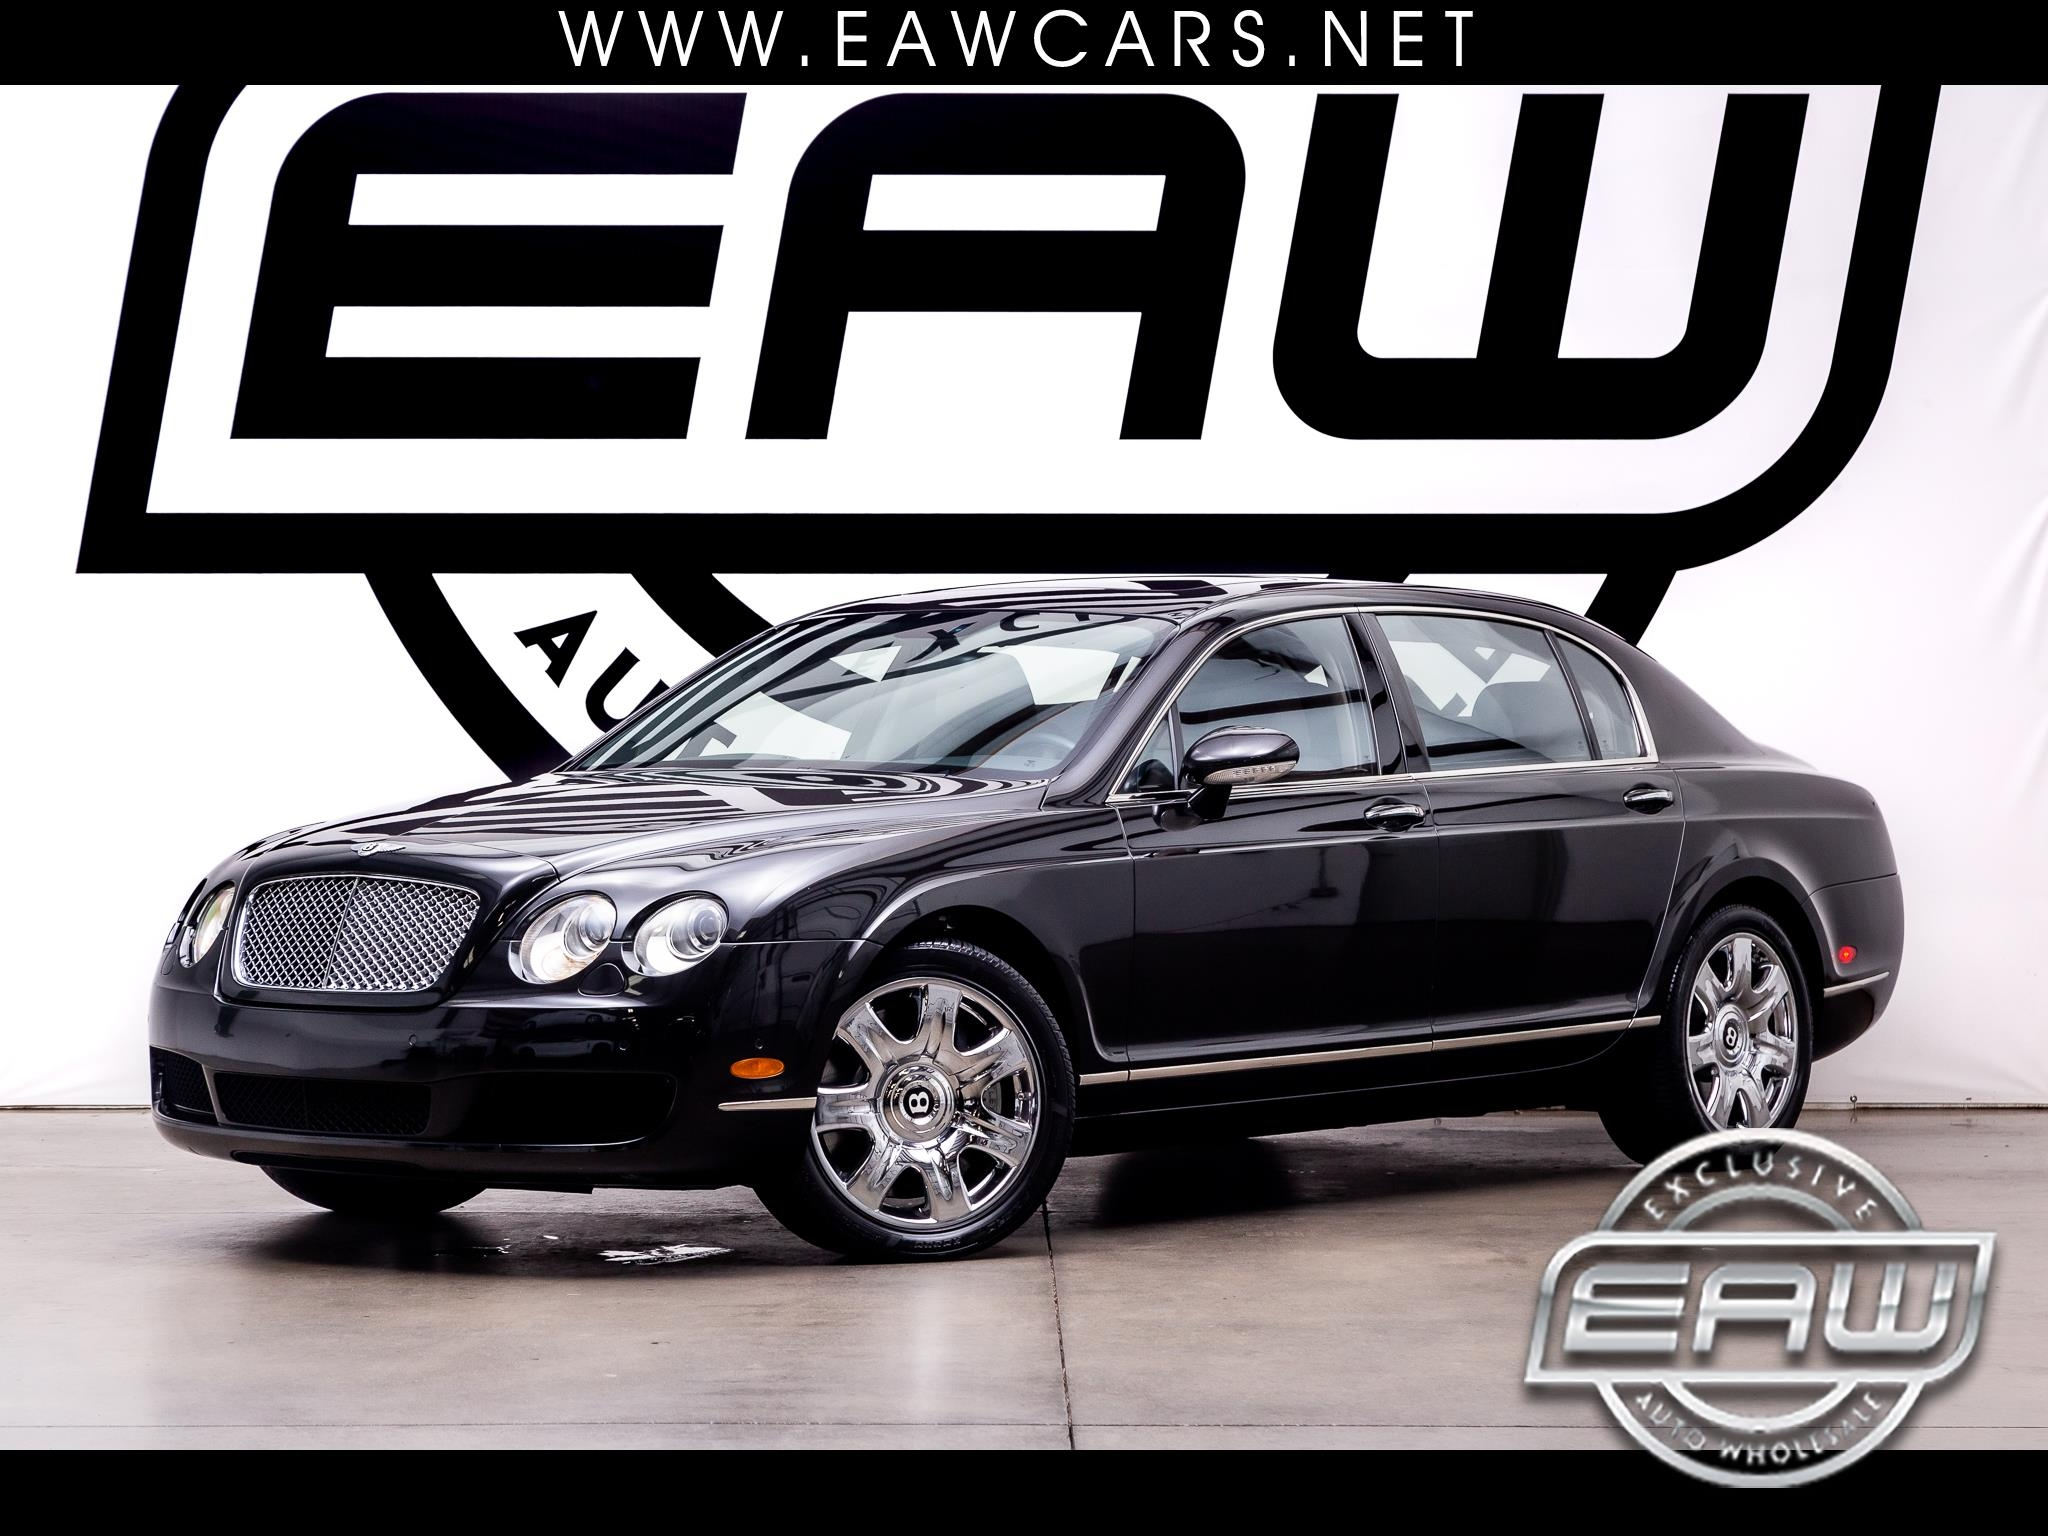 Bentley Continental Flying Spur 4dr Sdn 2008